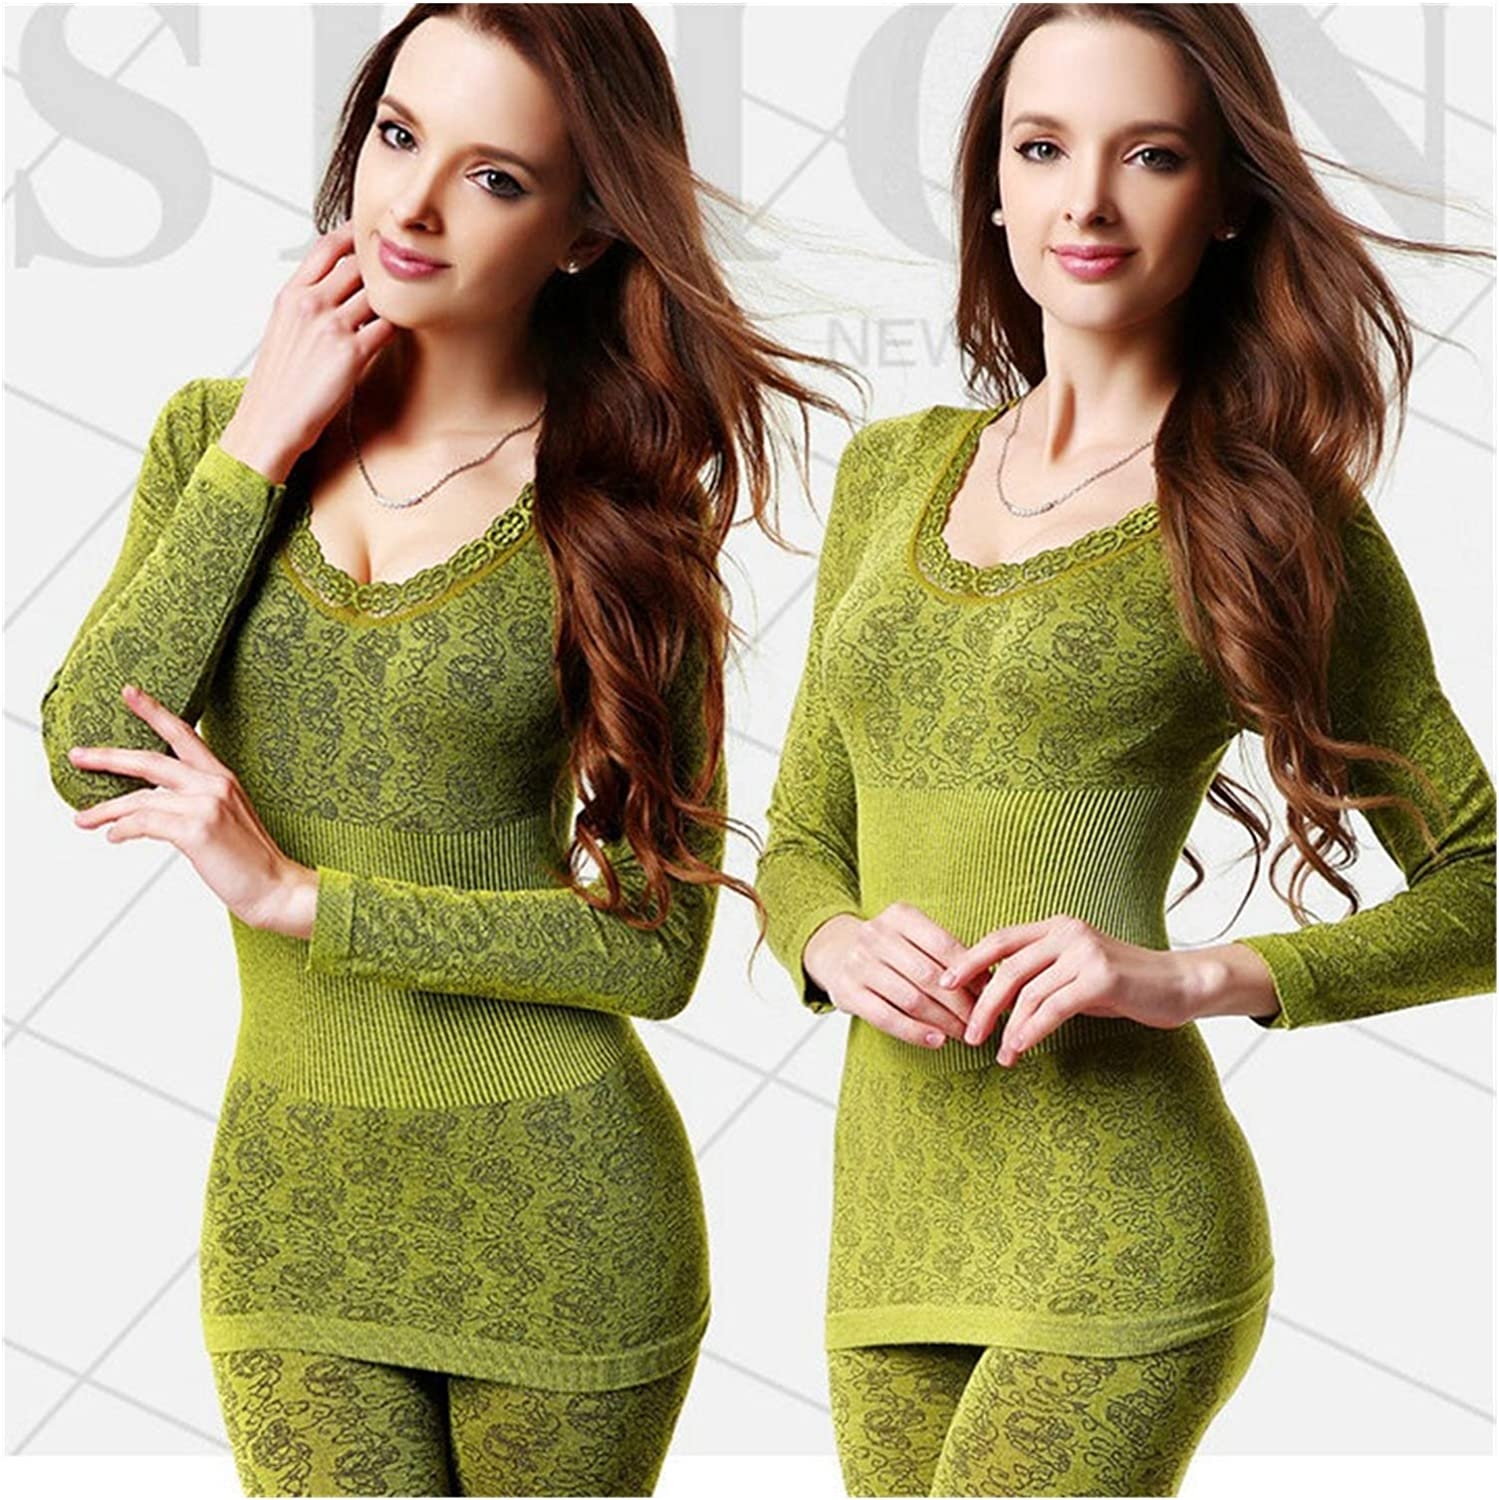 Sexy Women Thermal Underwear - Elastic High Neck Long Underwear Comfortable Hot Tops + Pants Underwear Set (Color : Green, Size : One Size)